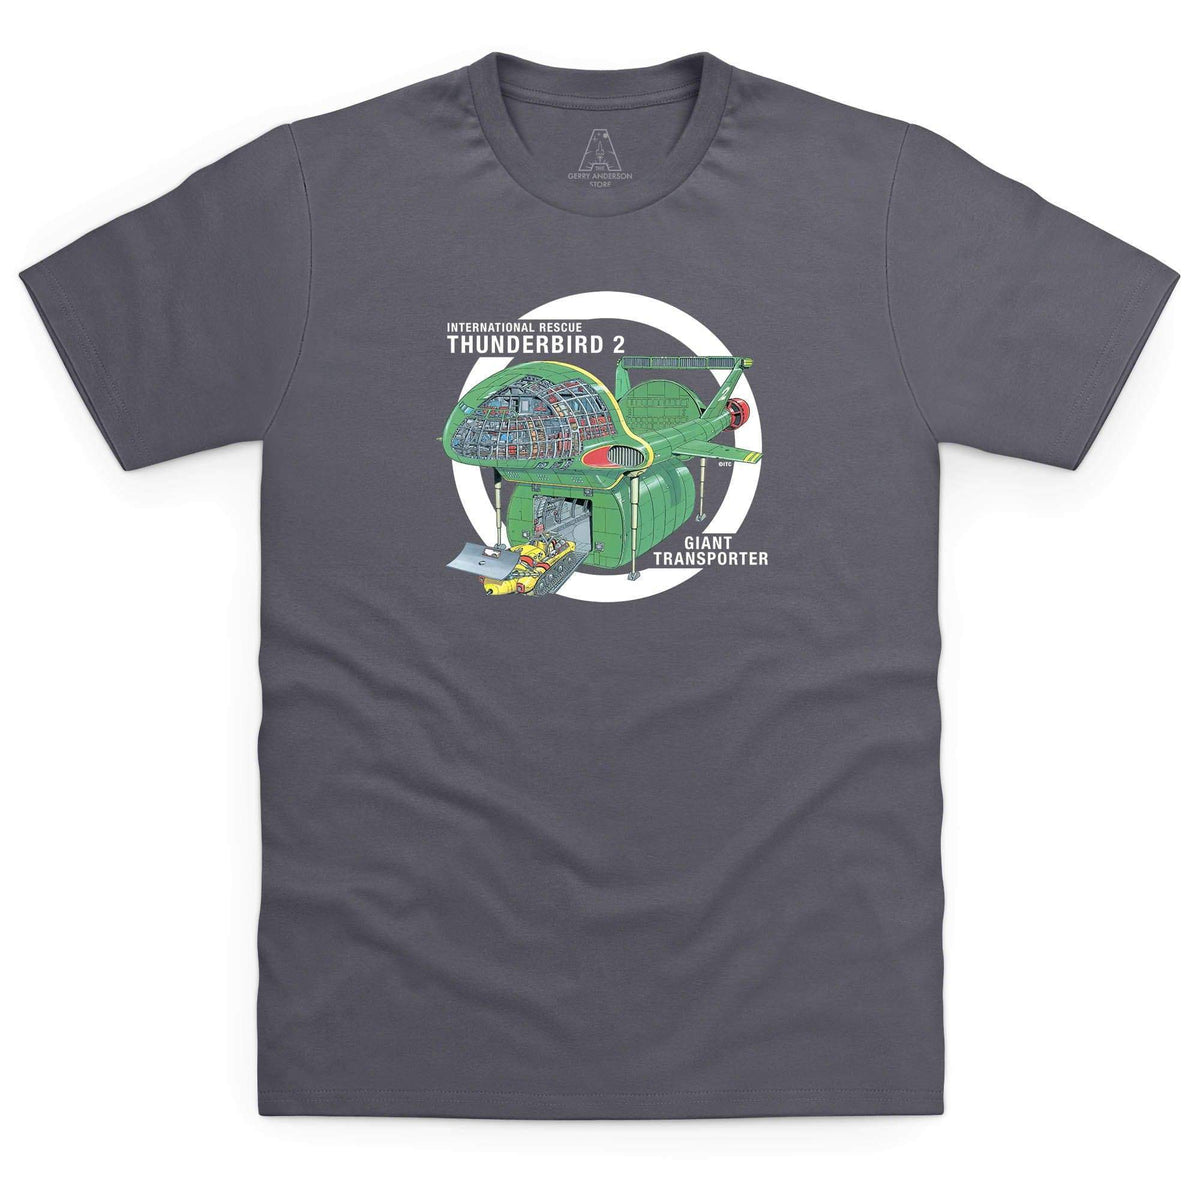 Thunderbirds: Thunderbird 2 Cutaway Men's T-Shirt [Official & Exclusive] - The Gerry Anderson Store